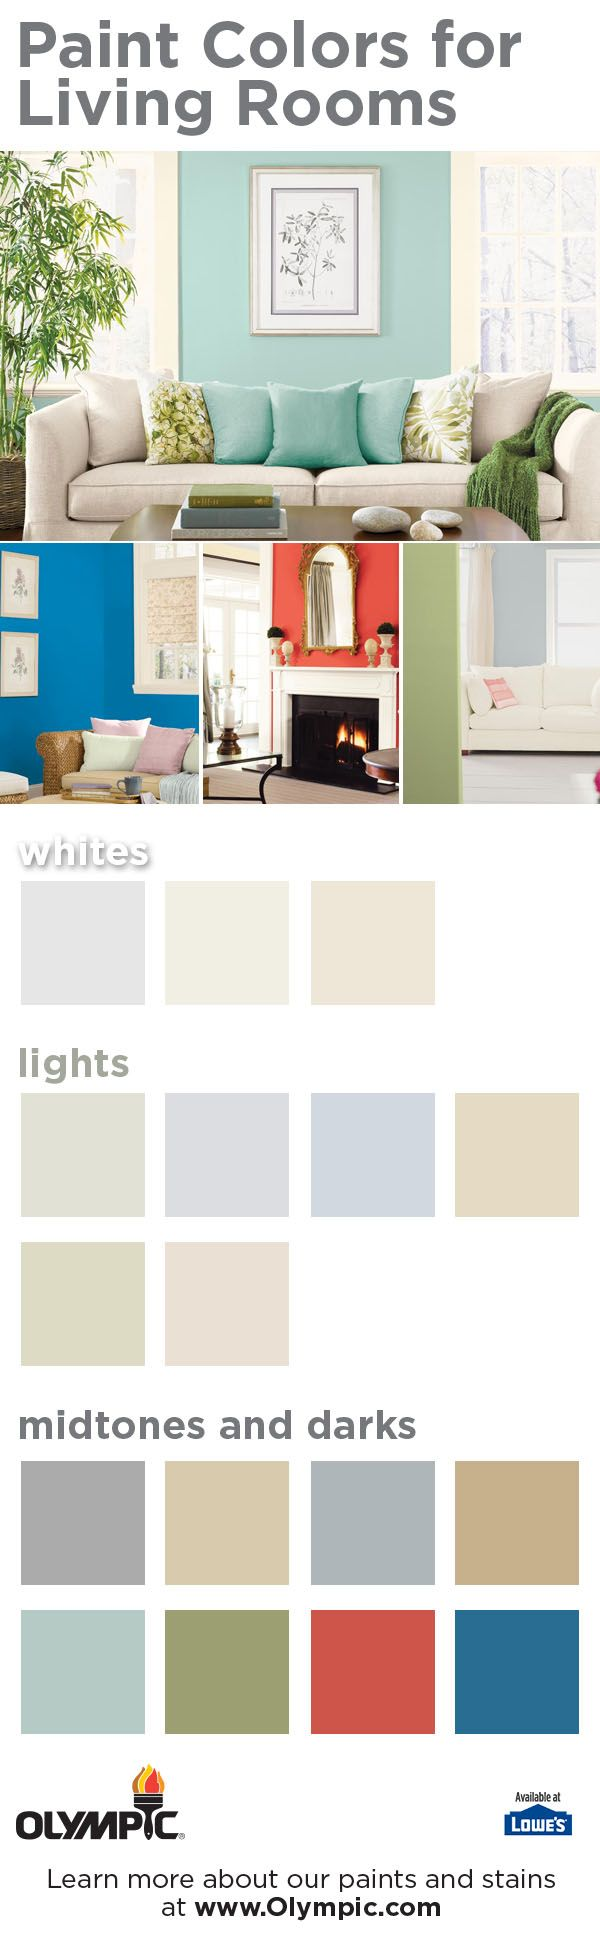 Living Room Color Ideas   Get Inspired!